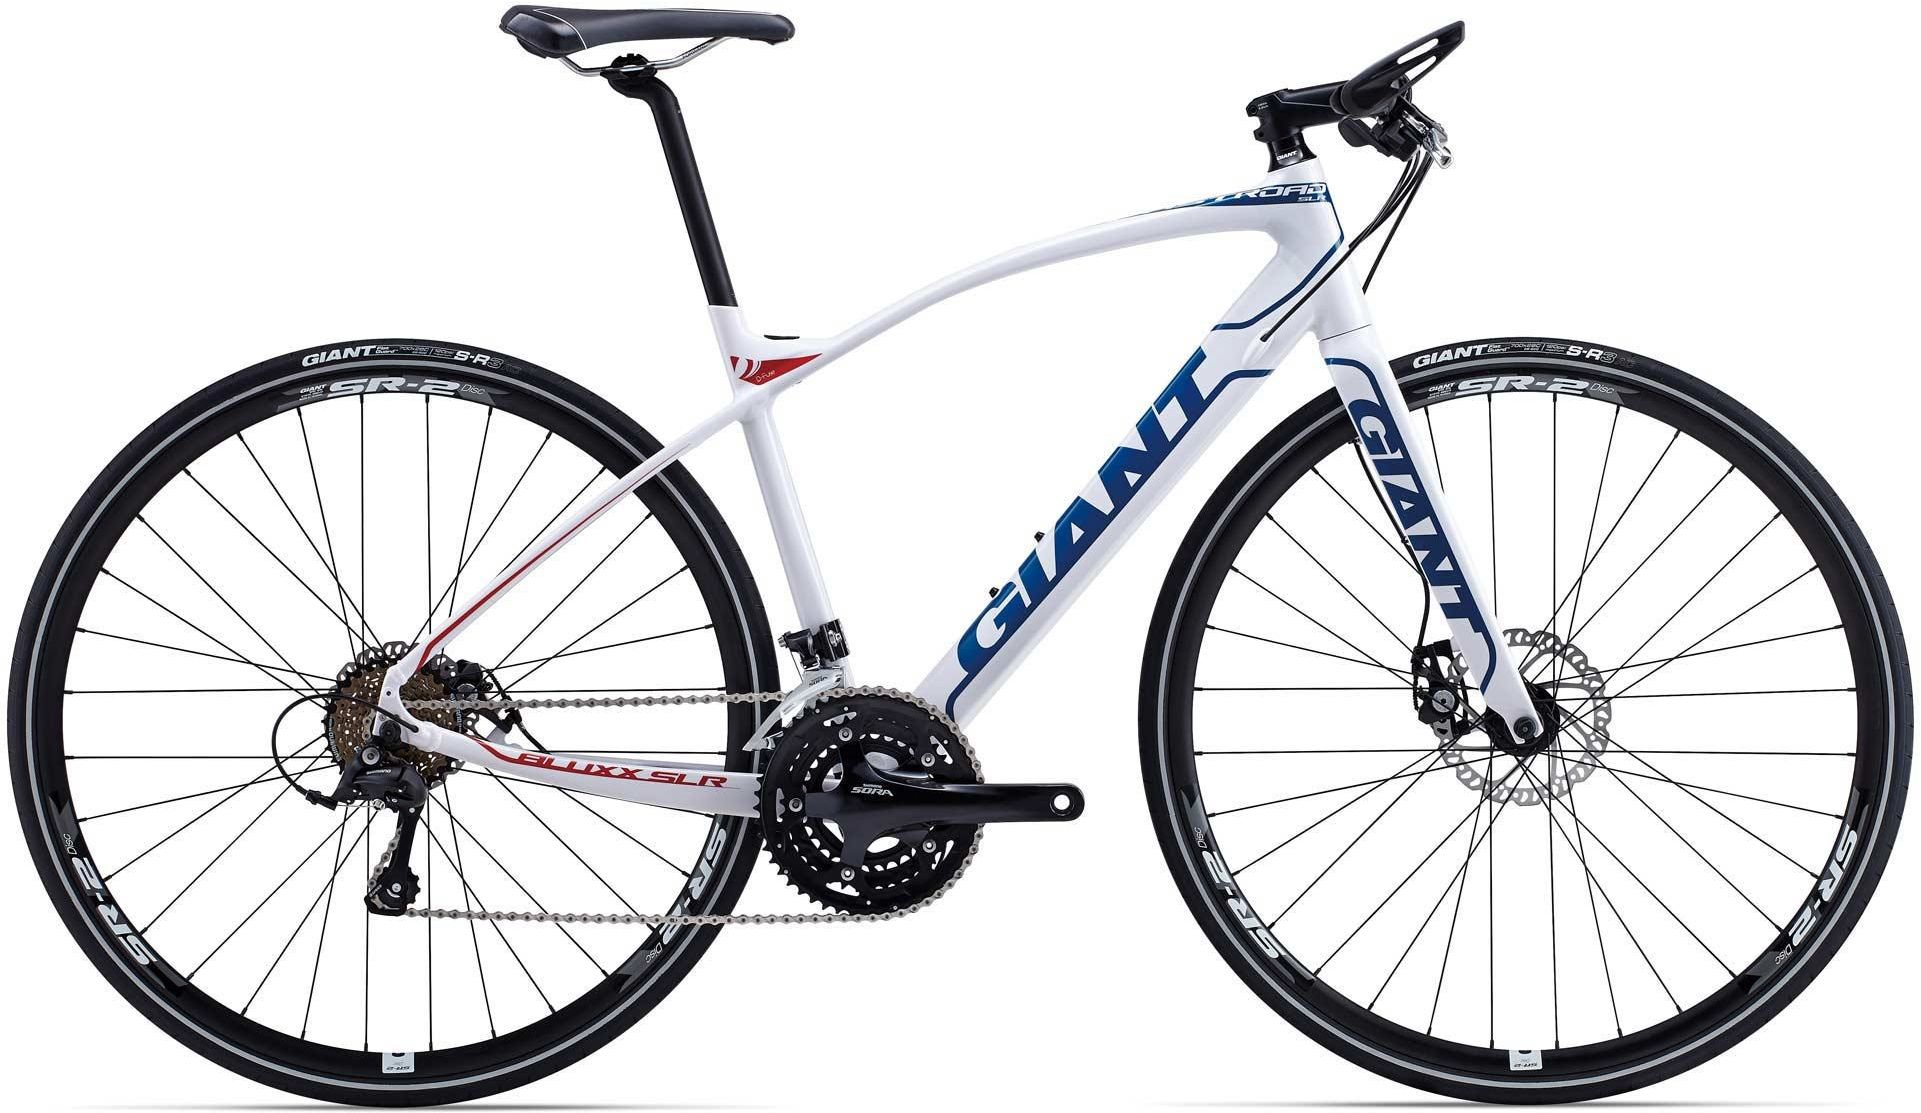 1b26939d95e Giant FastRoad SLR 2015 review - The Bike List